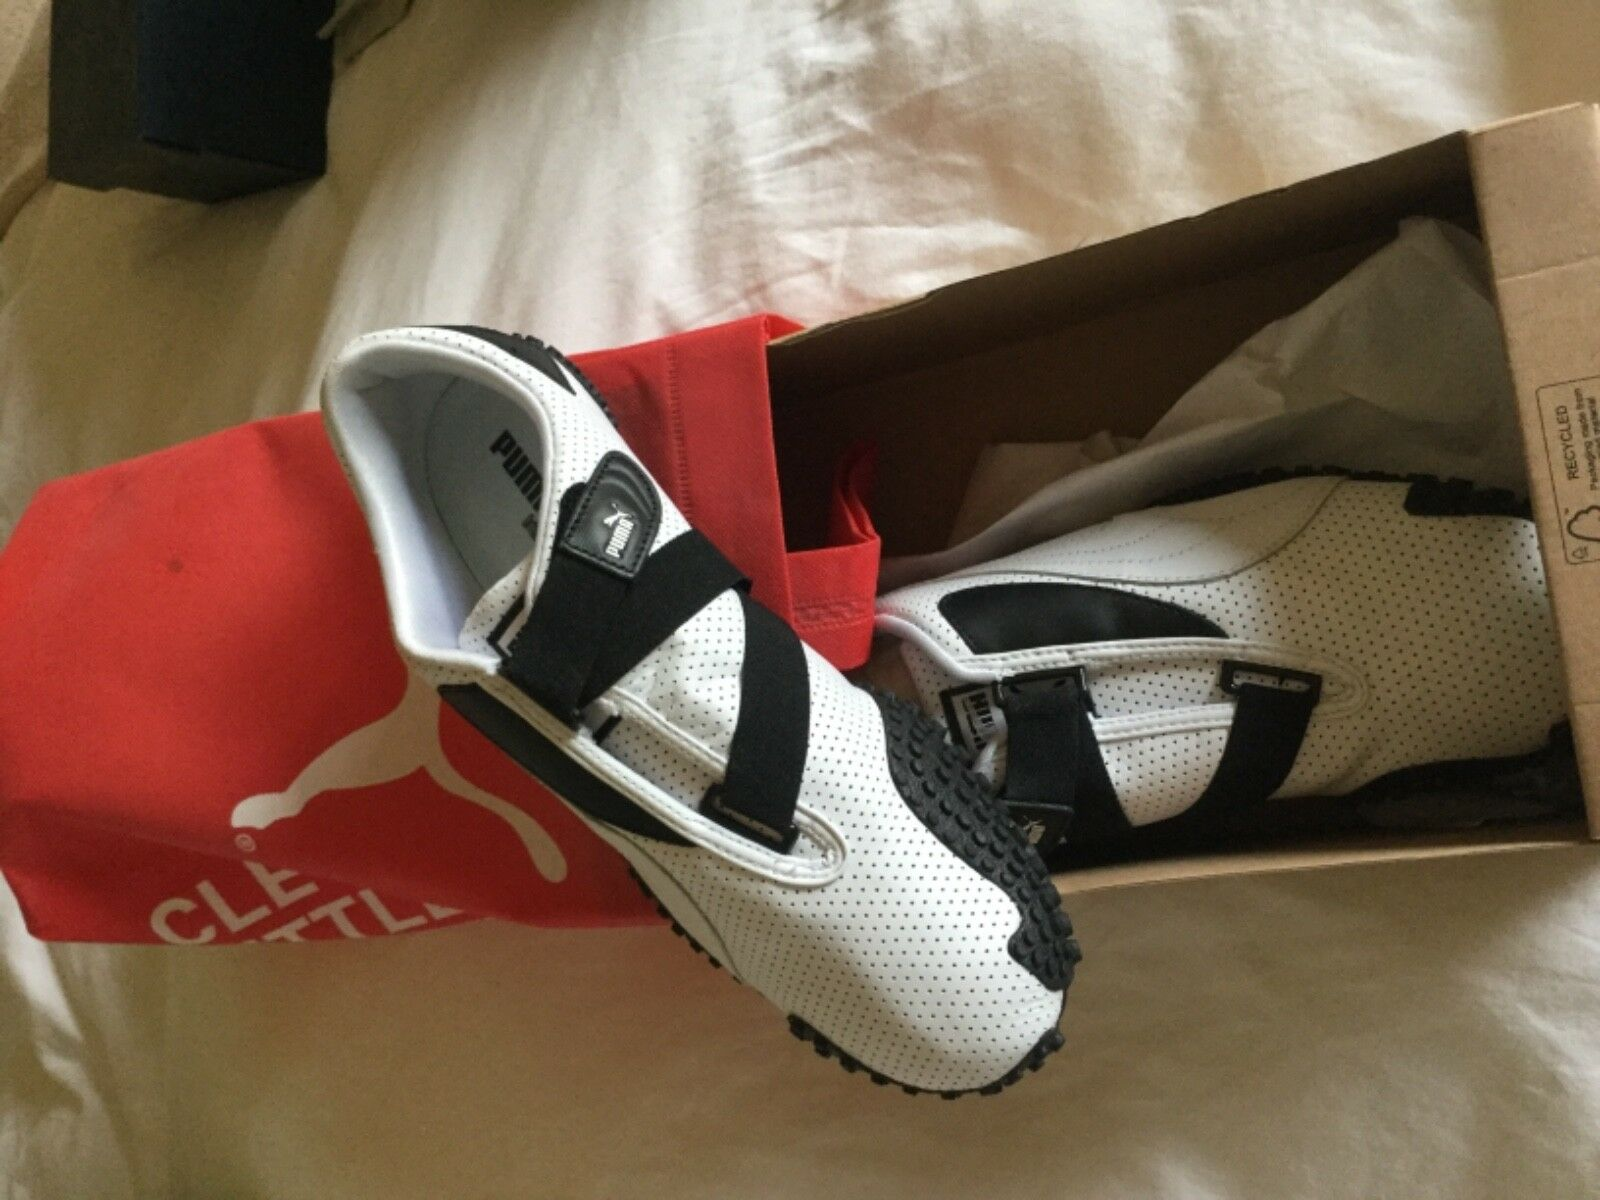 Puma Mostro Perf Leather -size White and black sneaker -size Leather 10.5 277237